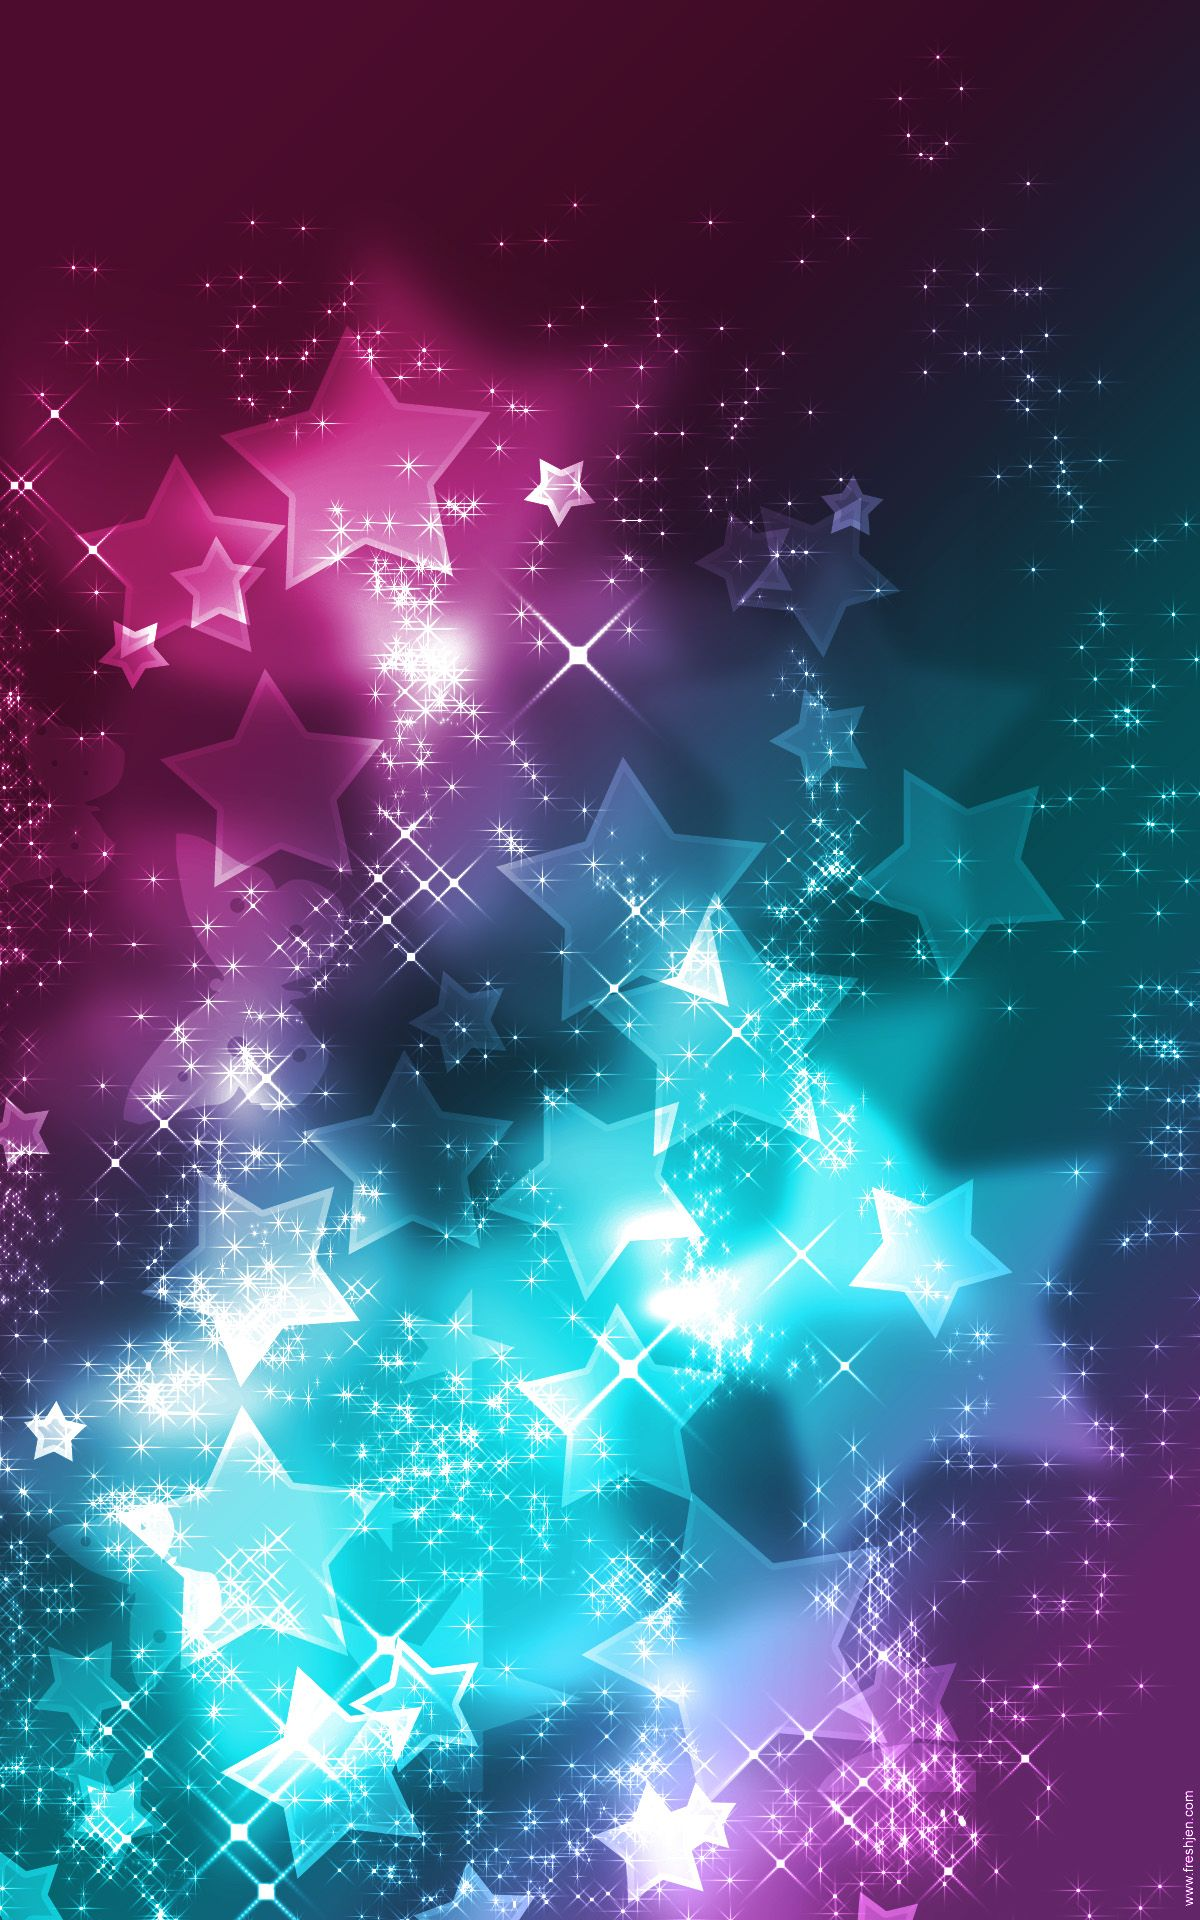 Pink teal purple stars wallpaper background wallpaper pink teal purple stars wallpaper background thecheapjerseys Choice Image